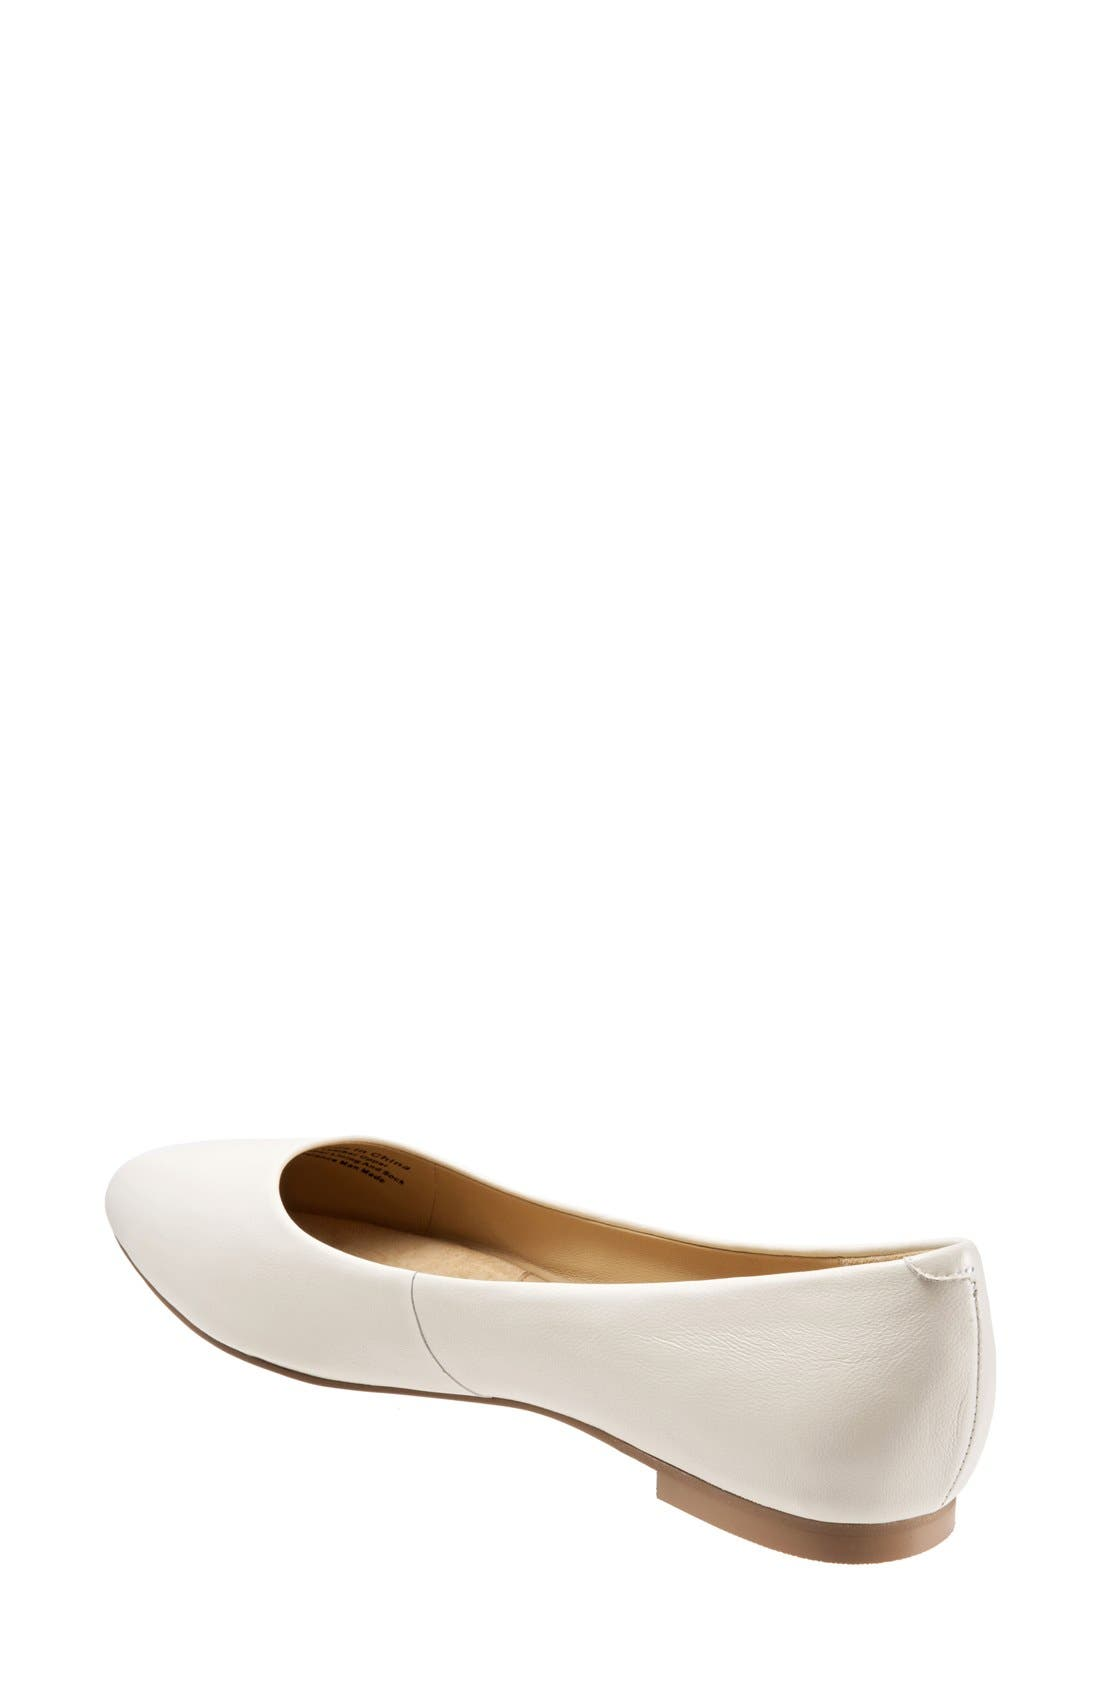 Alternate Image 5  - Trotters Estee Pointed Toe Flat (Women)